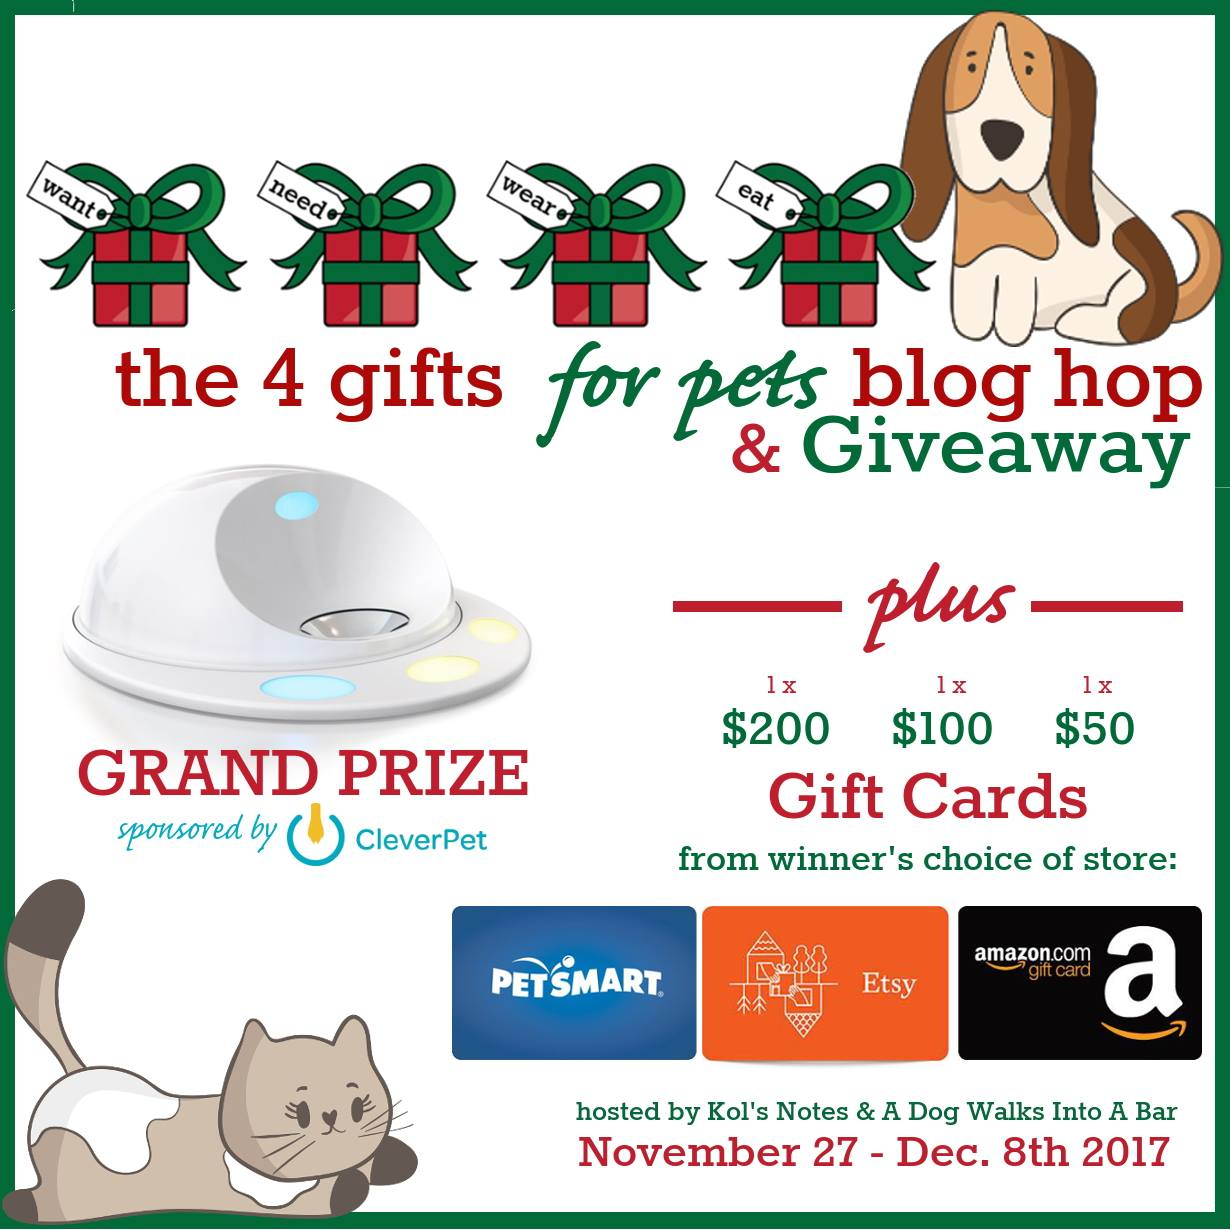 4 Gifts for Pets Blog Hop and Giveaway Starts November 27